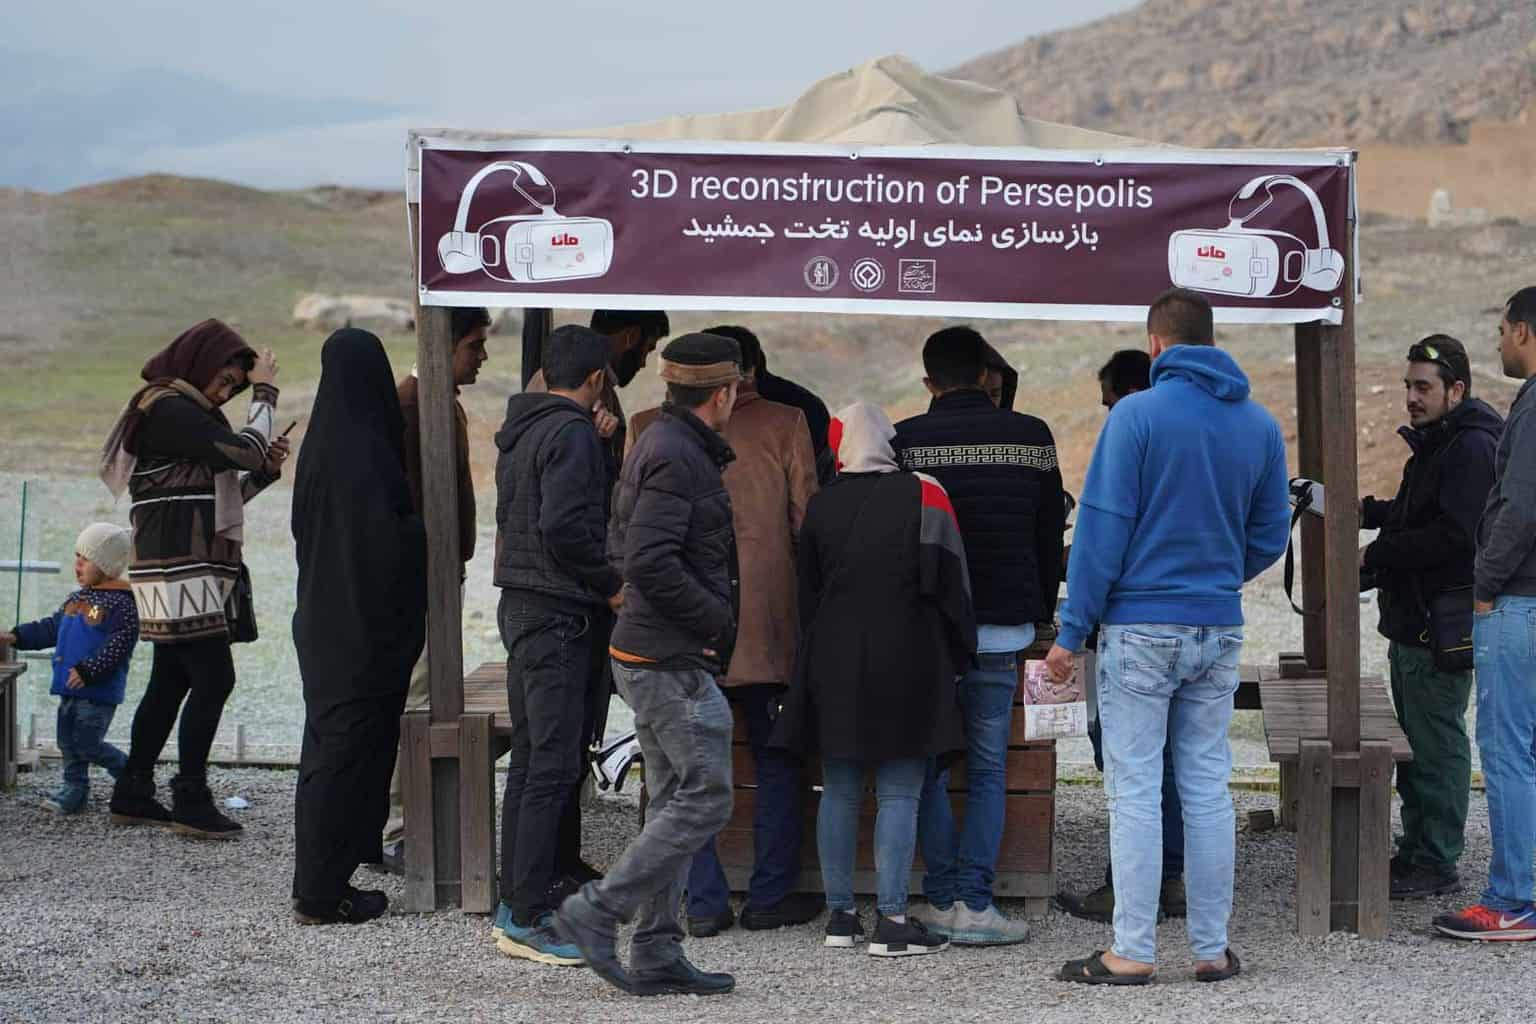 The que for borriwing the virtual glasses, it´s worth it. 3d glasses in Iran